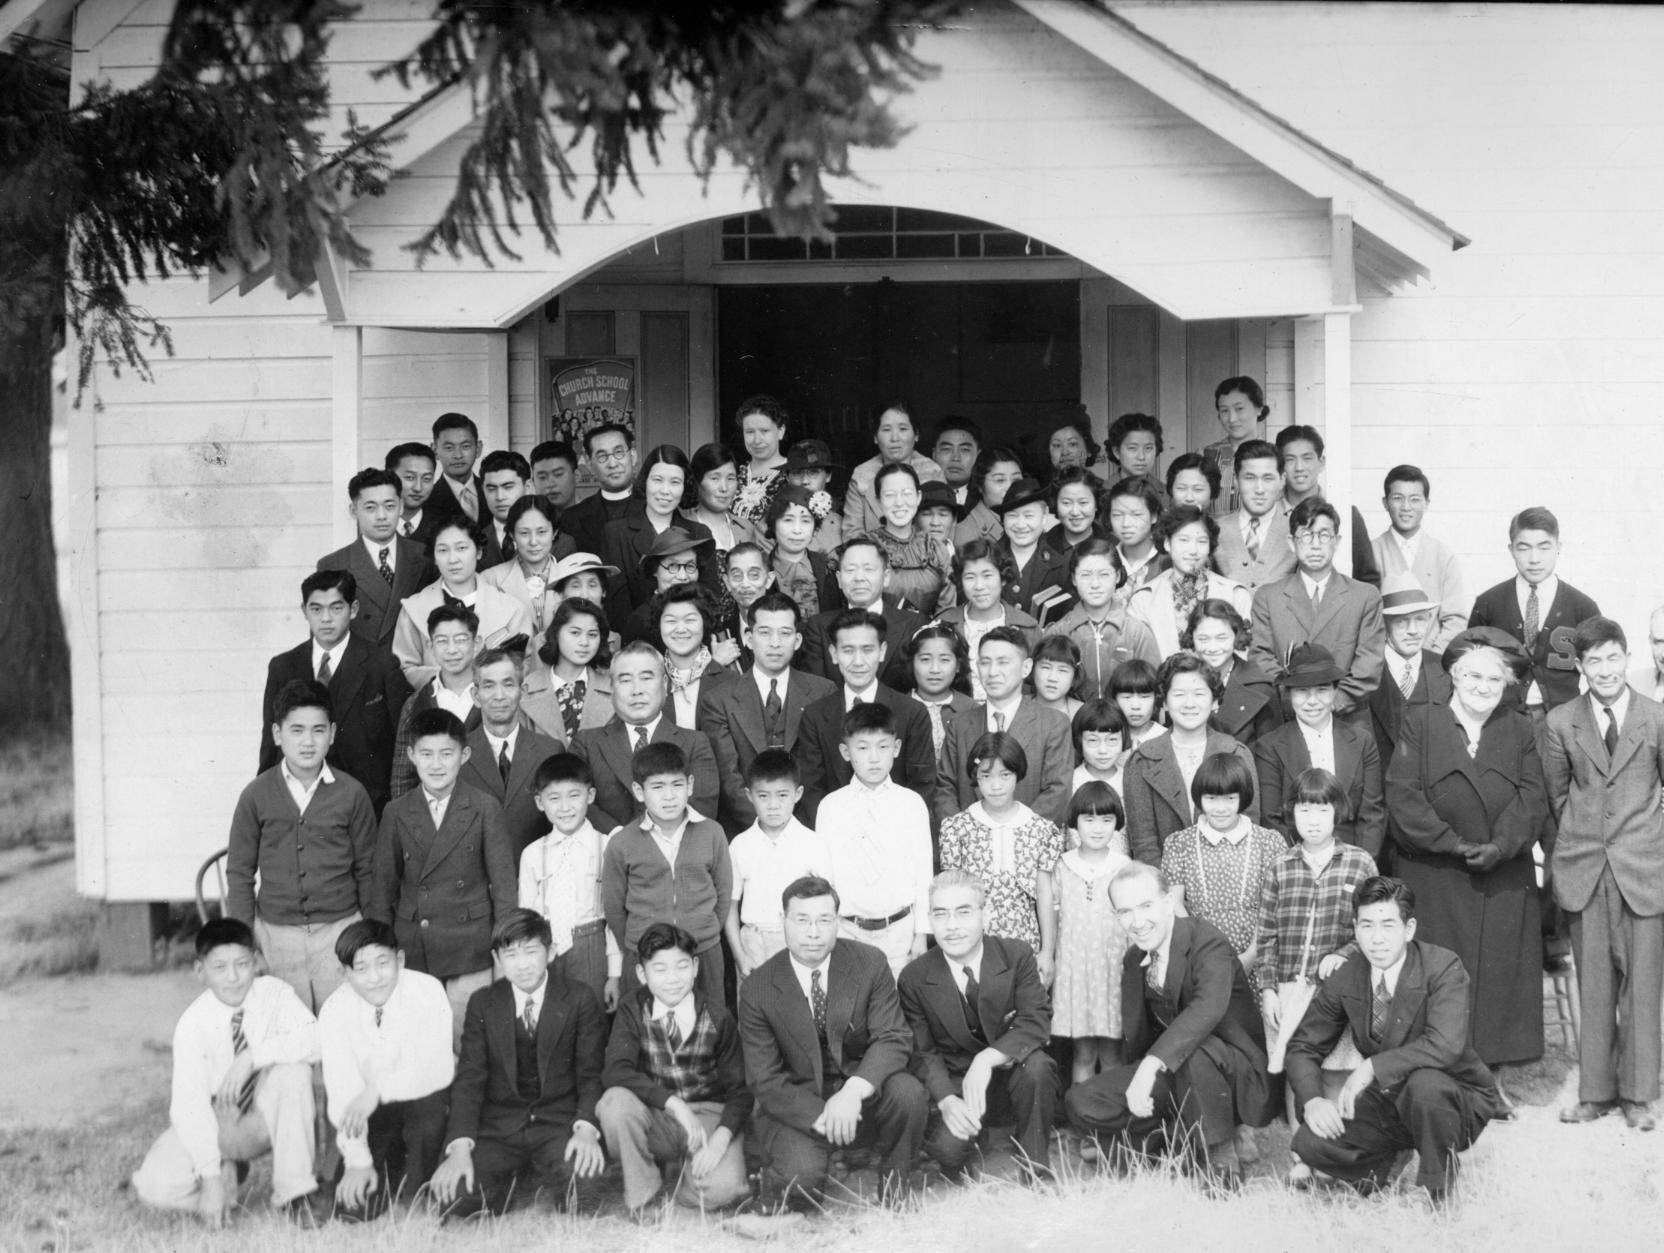 A defining moment in Dr. Glenn A. Olds' career came on the night of the Dec. 7, 1941 attack on Pearl Harbor. He and a small group of clergymen helped protect the Japanese Community Church, pictured here in 1938, from a angry mob.